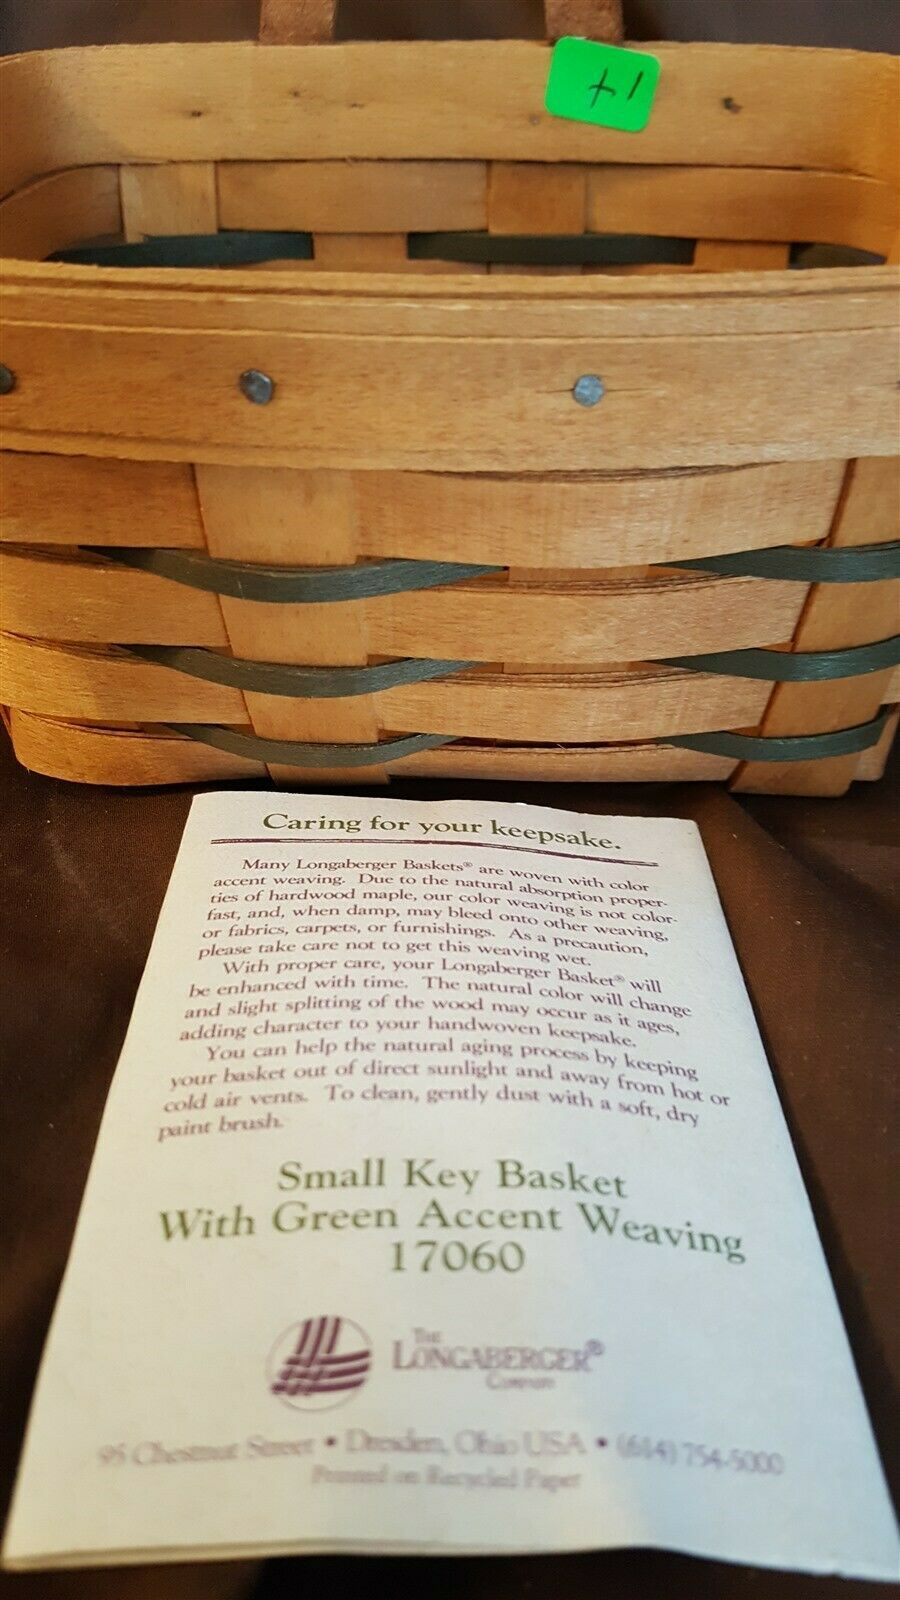 Longaberger 1995 Small KEY BASKET #17060 With Leather Strap Hanging